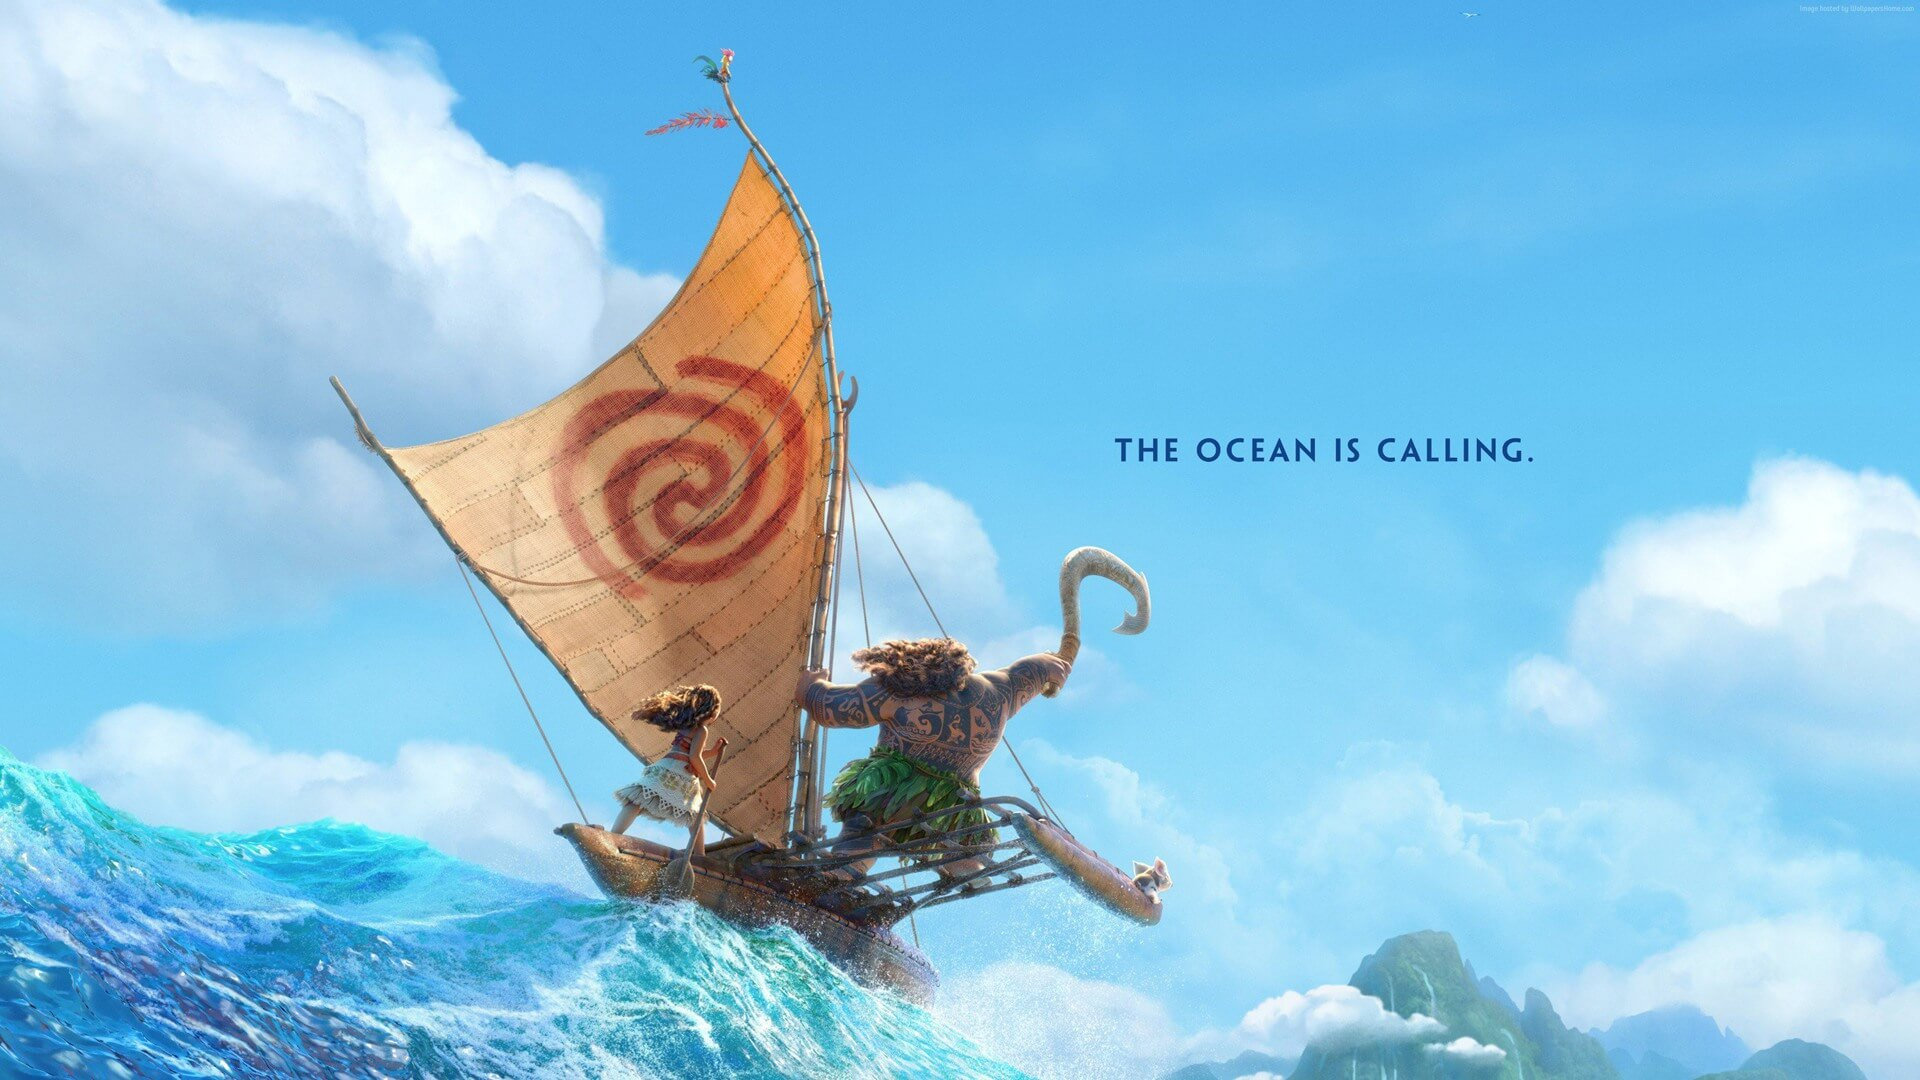 Moana and maui sailing disney movie  184   1